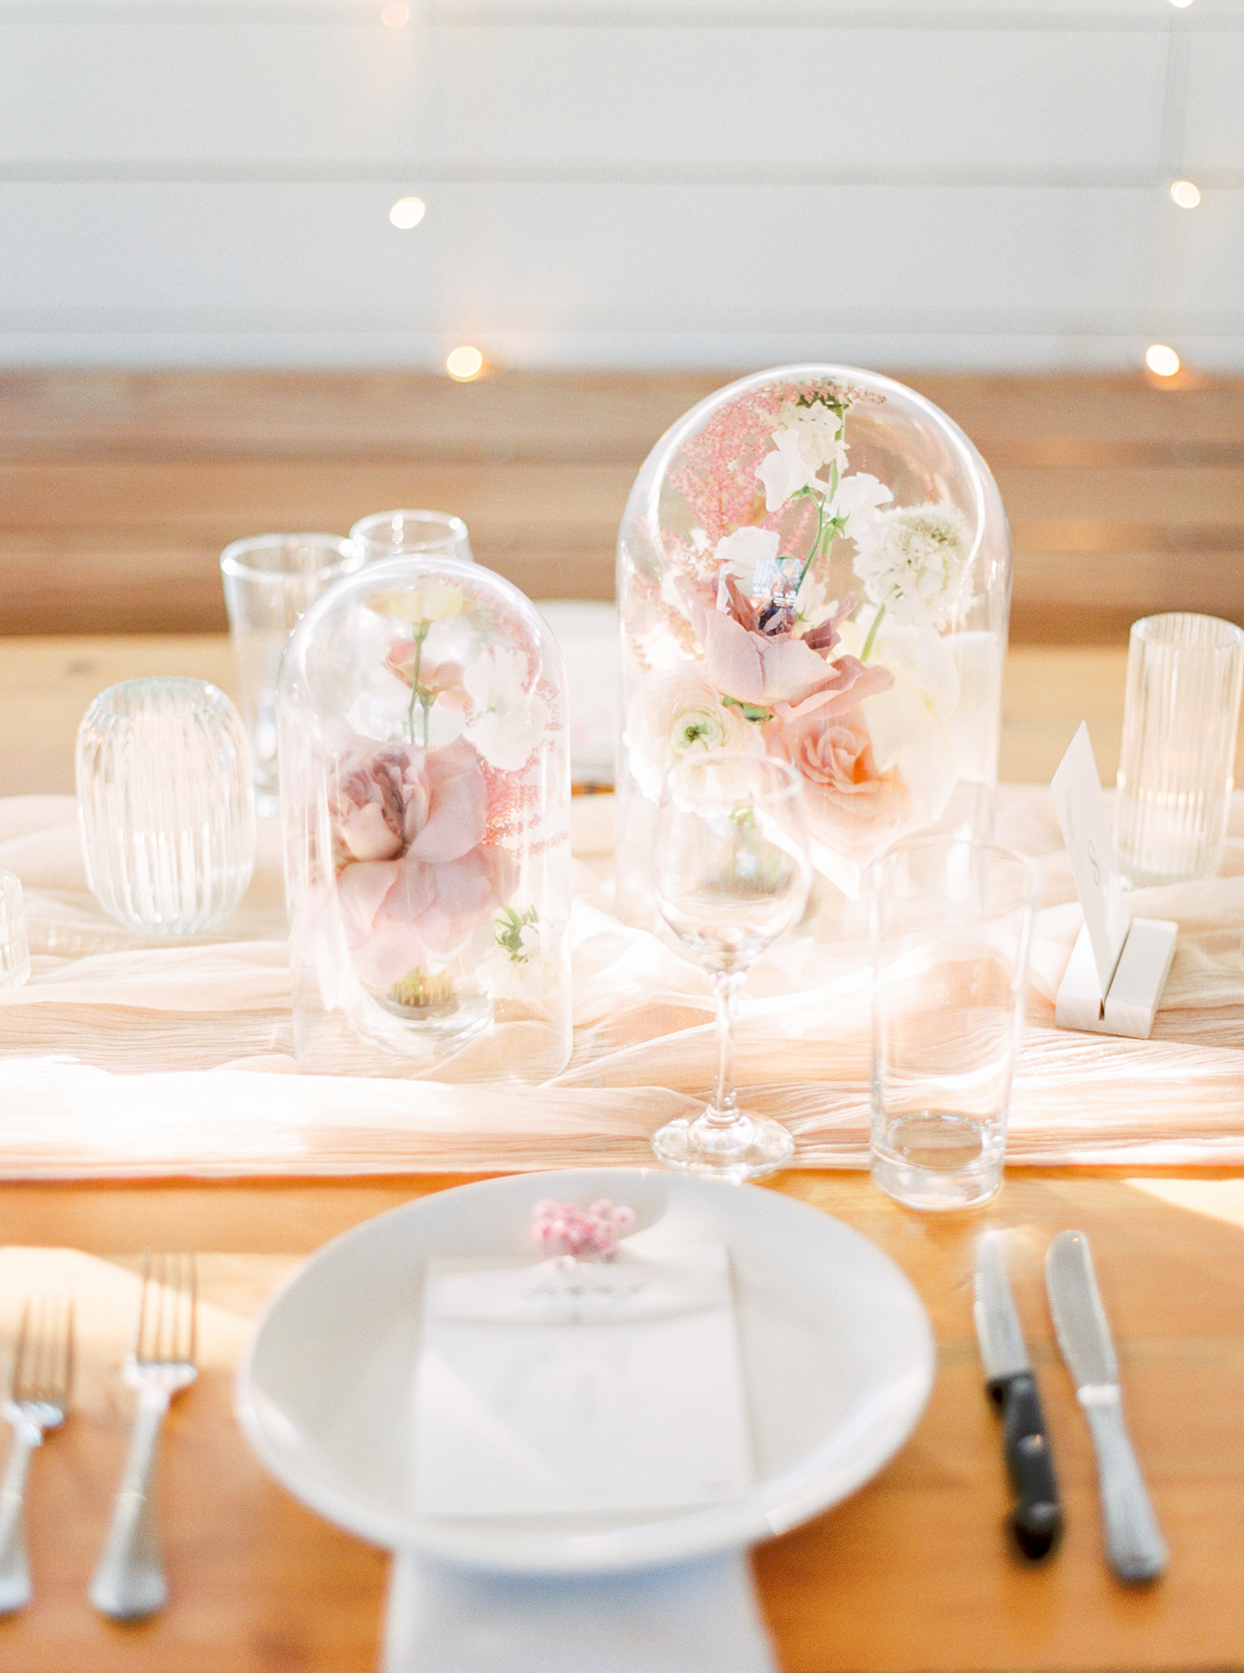 wedding reception table setting with pink flowers in cloches